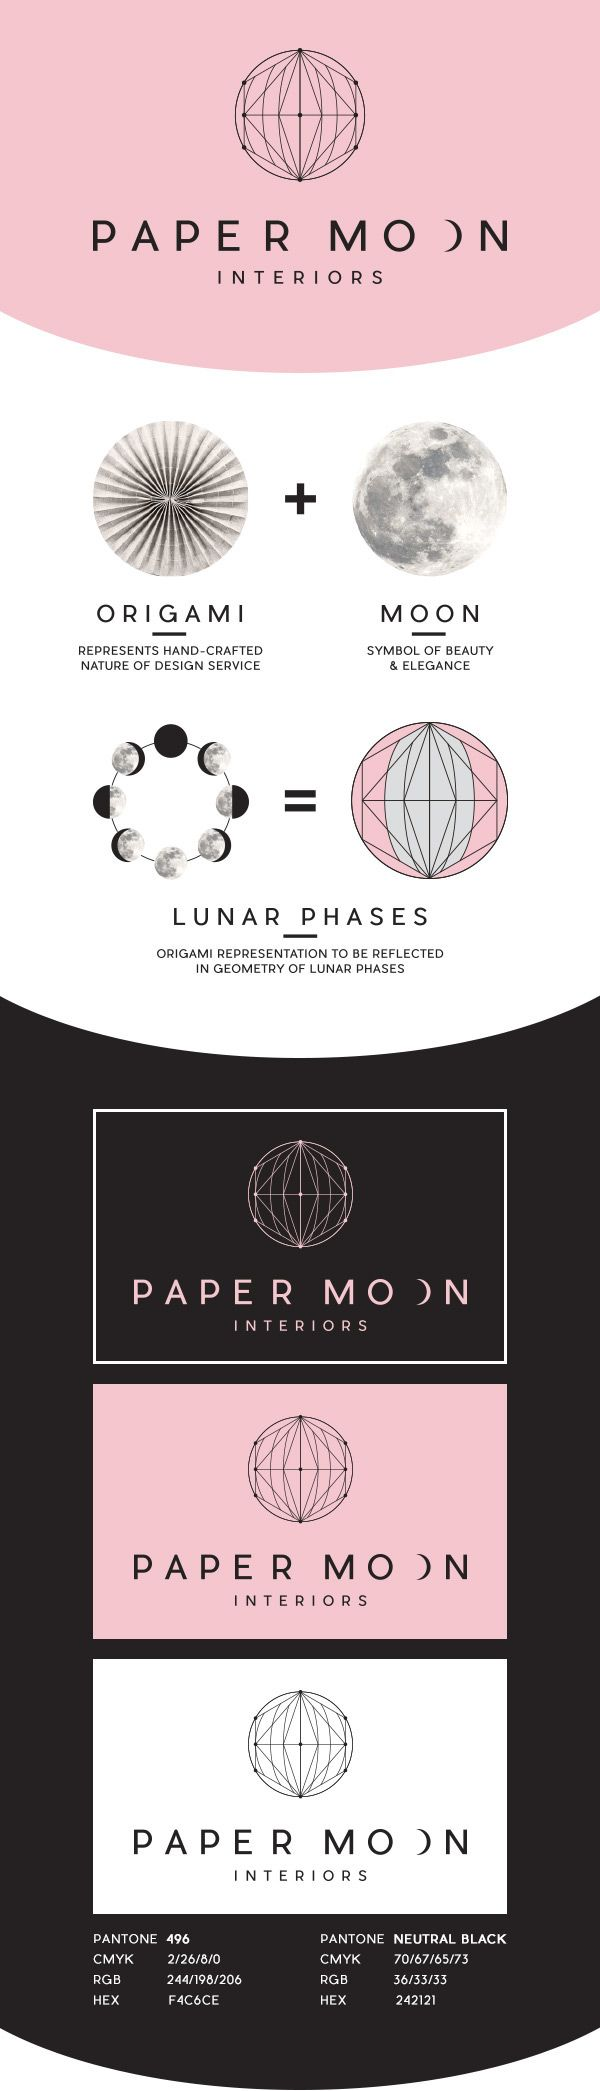 Paper Moon Interiors Branding on Behance